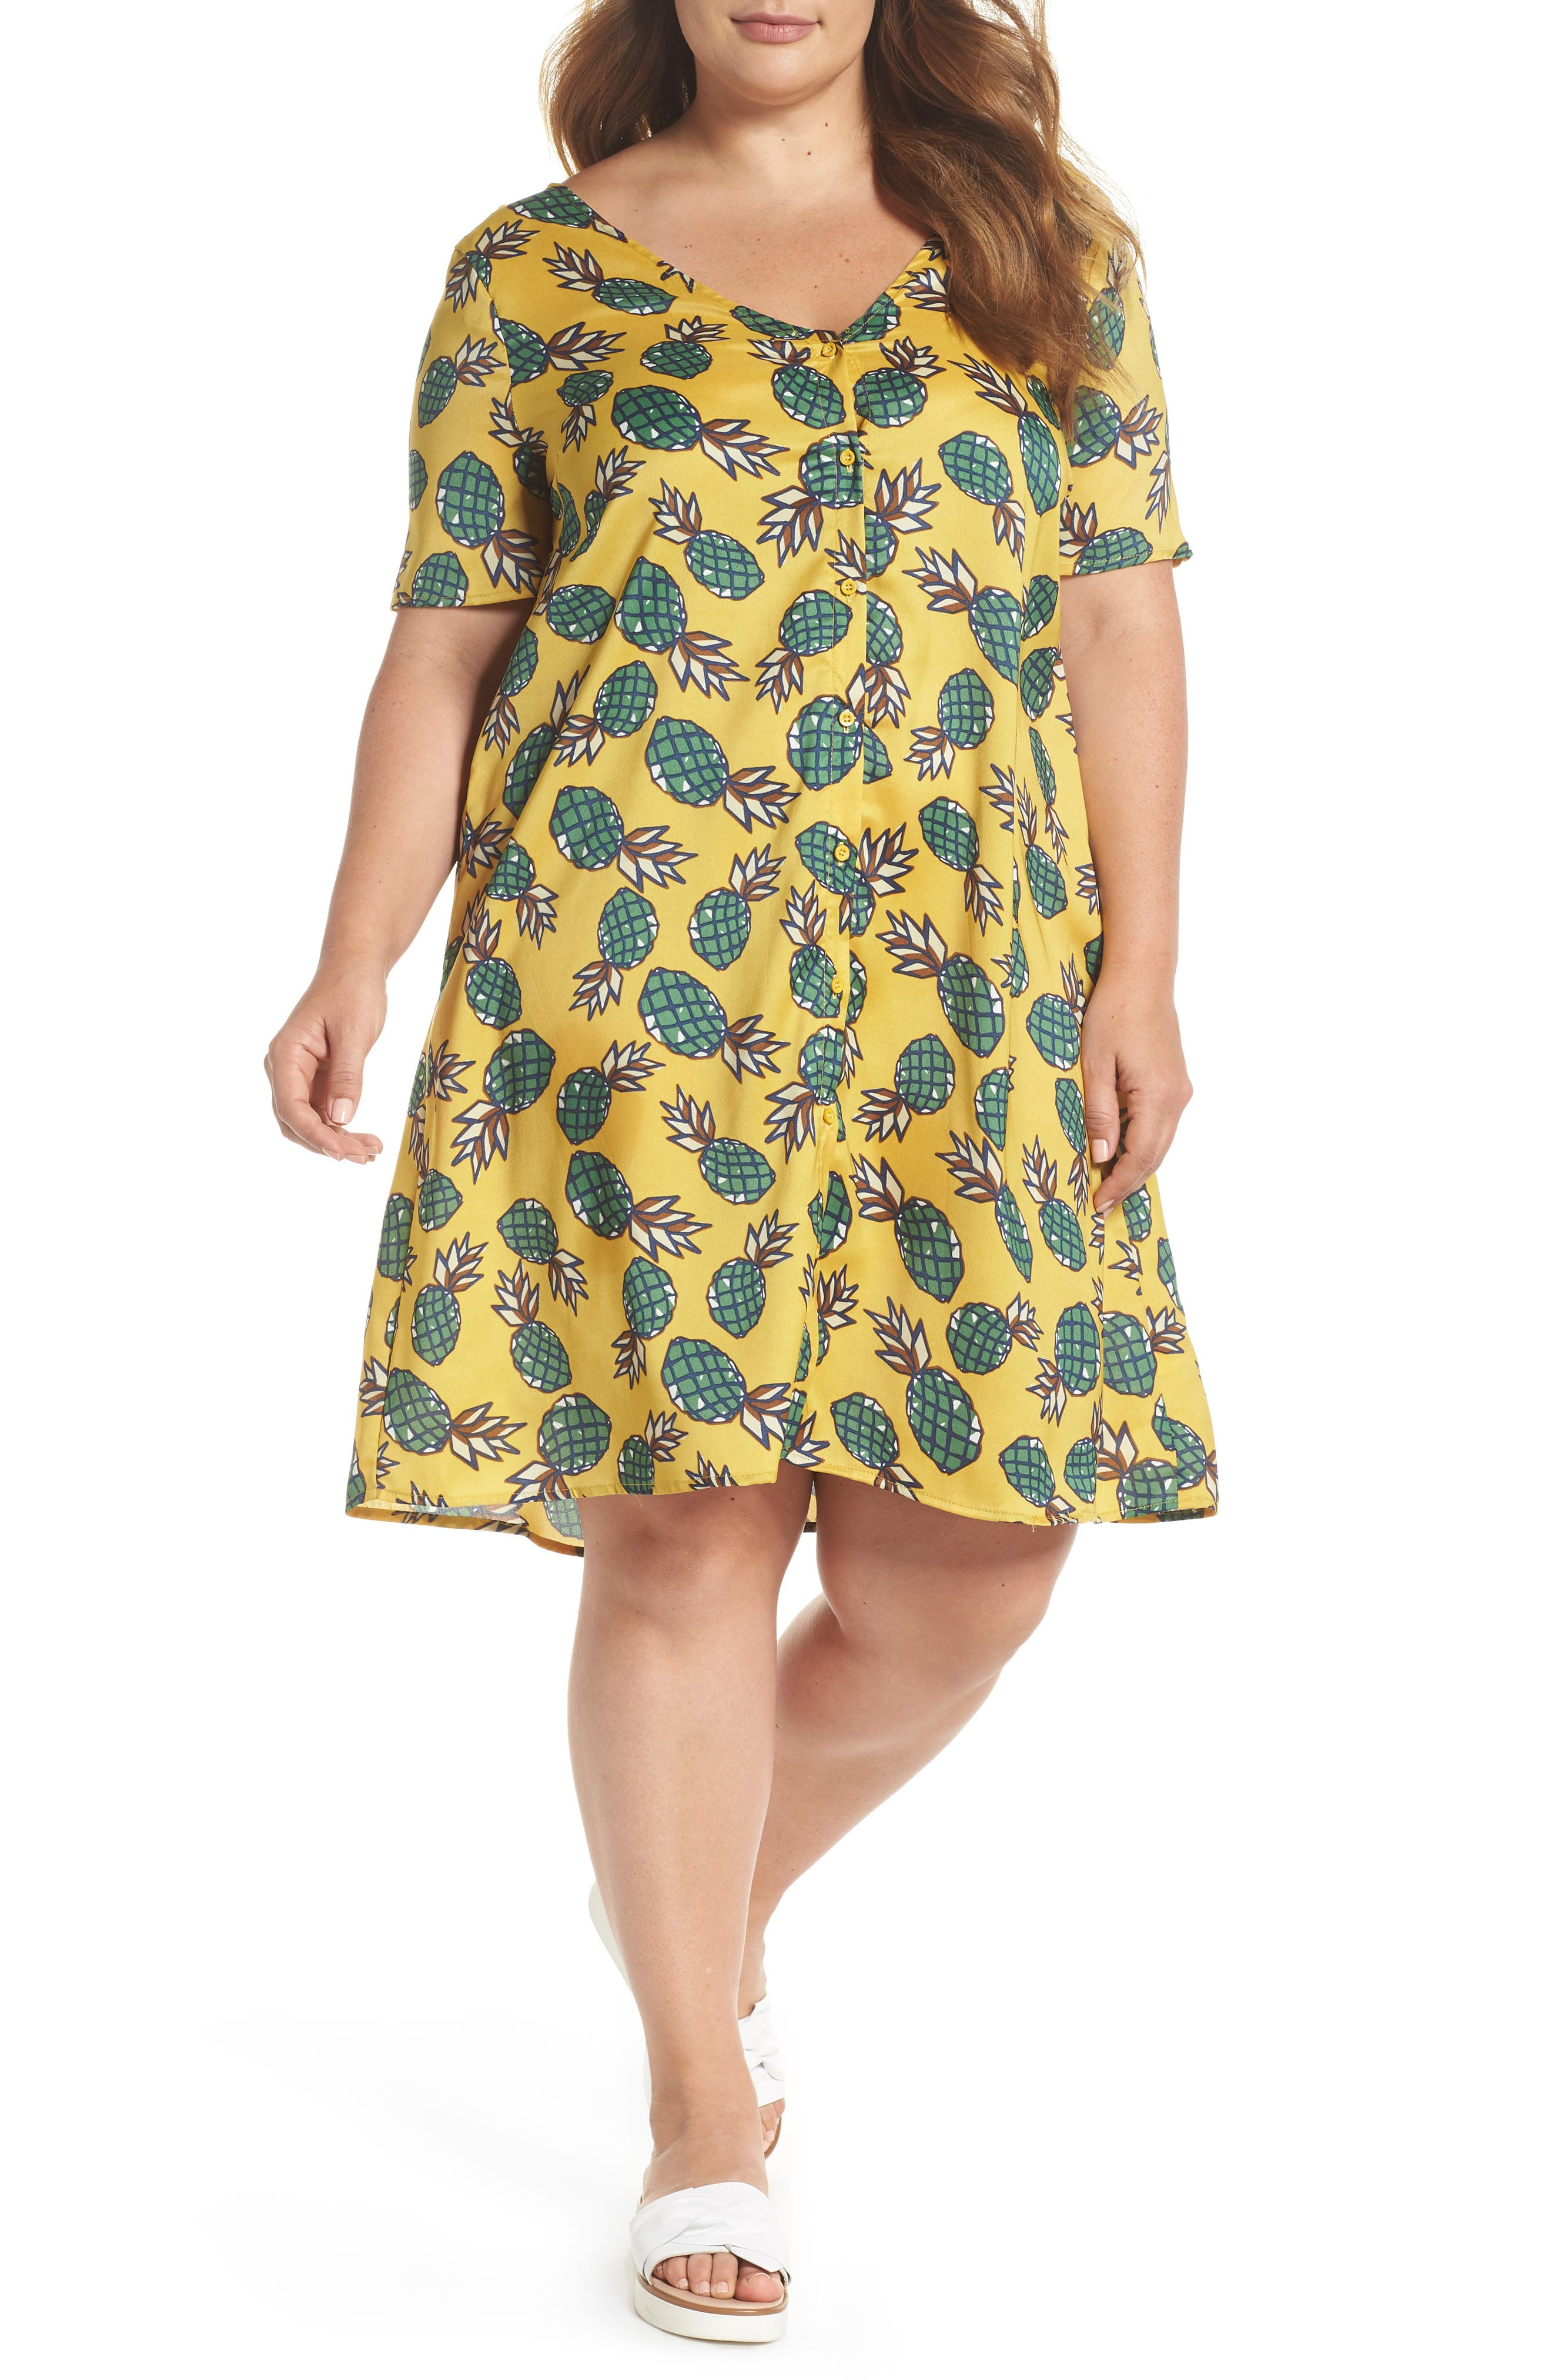 BUTTON FRONT PINEAPPLE PRINT DRESS